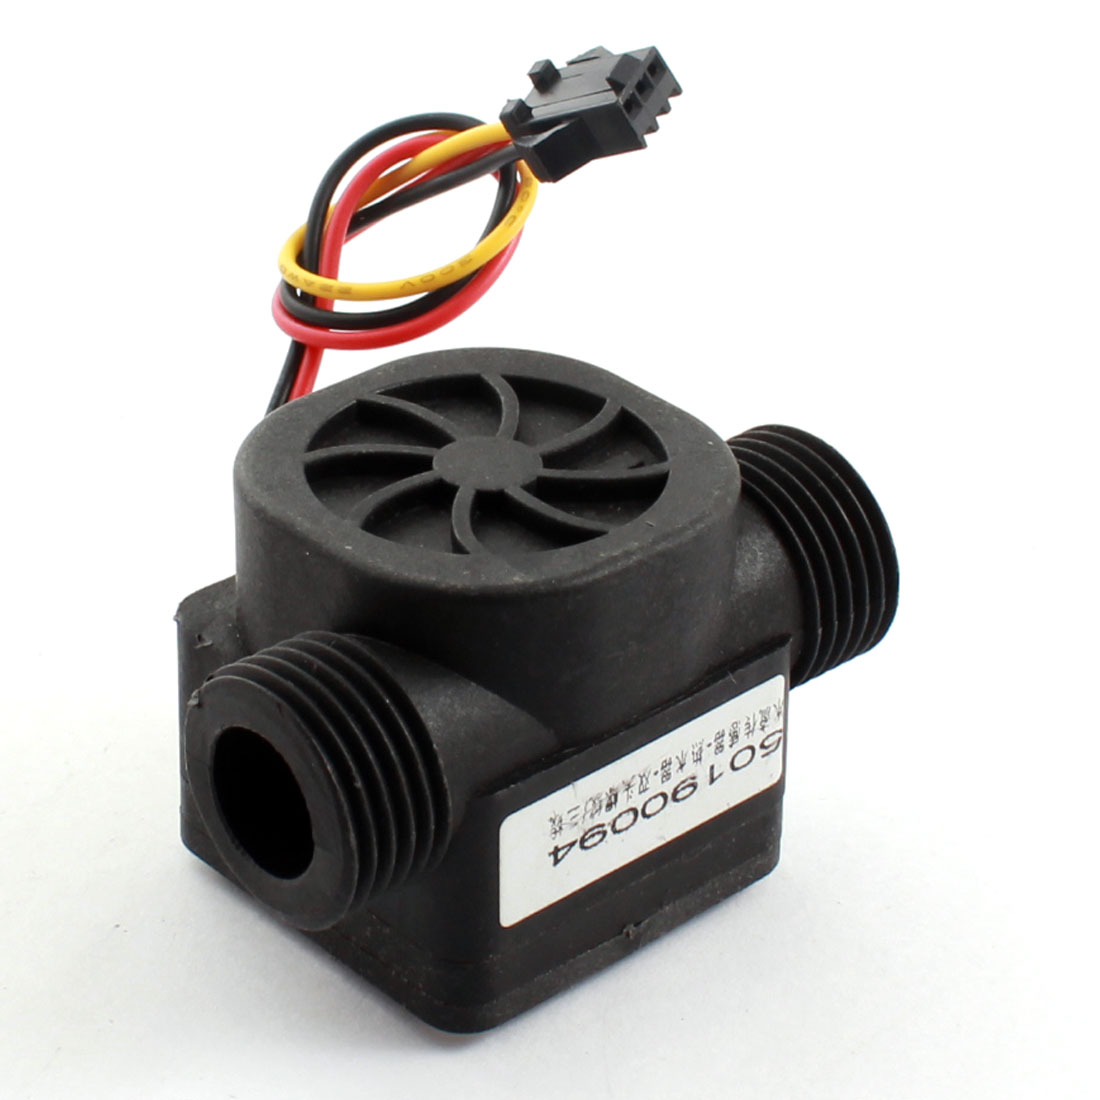 0-2MPa 20mm Thread 3P JST-SM Plug Black Plastic Water Flow Control Hall Sensor Control Switch DC5-12V